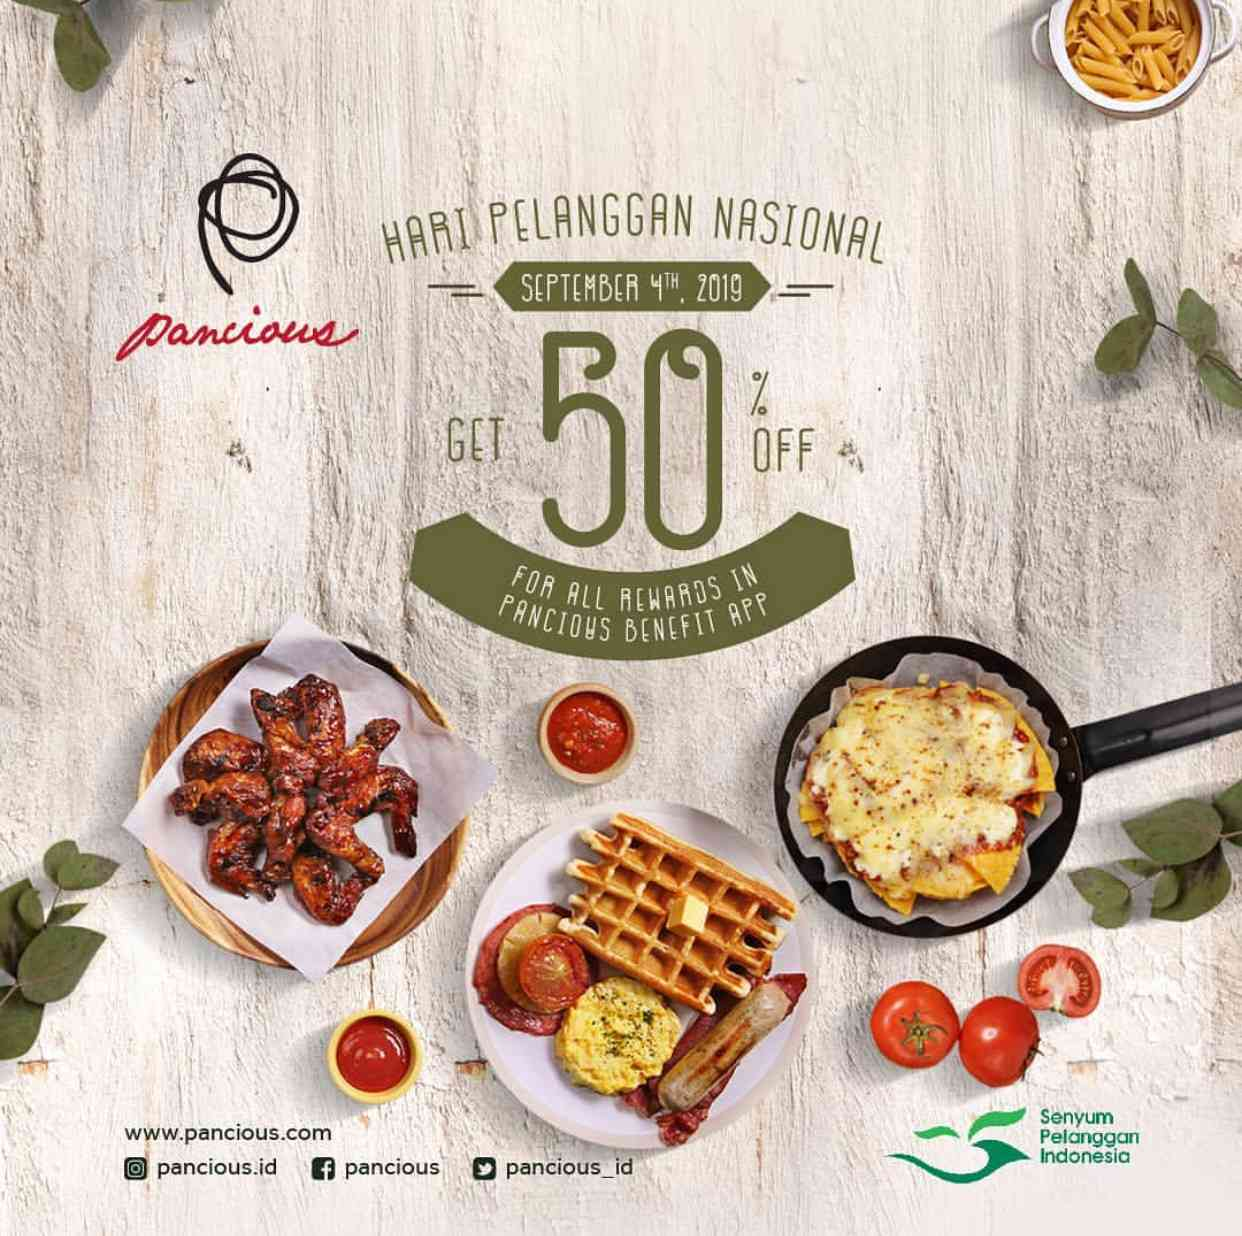 Pancious Promo Hari Pelanggan Nasional Discount 50% Off for All Rewards in Pancious Benefit App